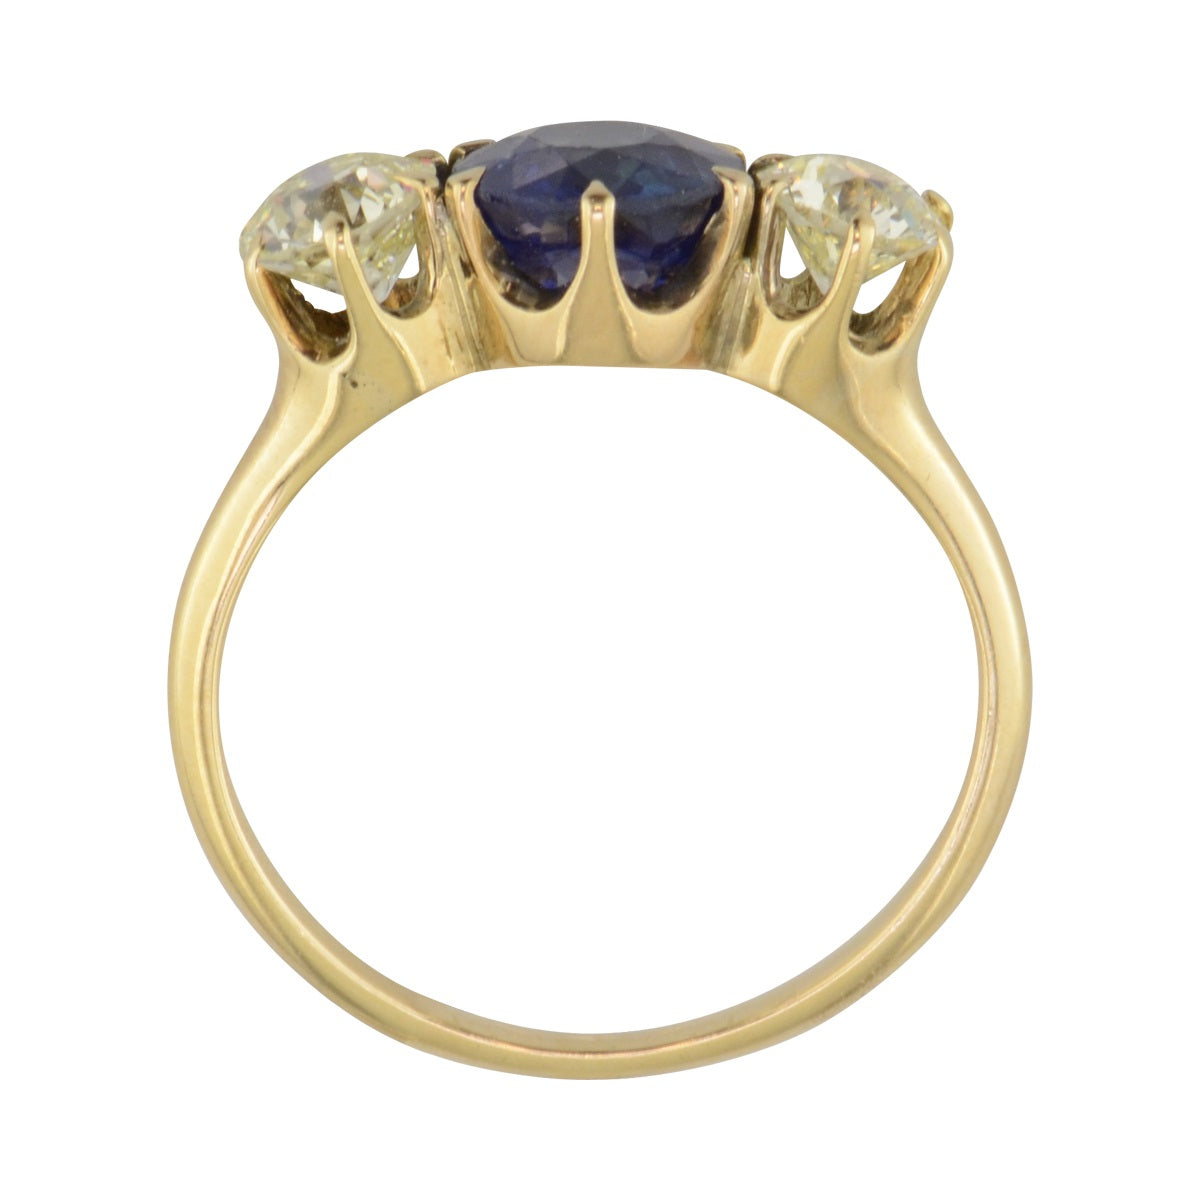 Tryon Creek Antique three stone engagement ring with sapphire and diamond.